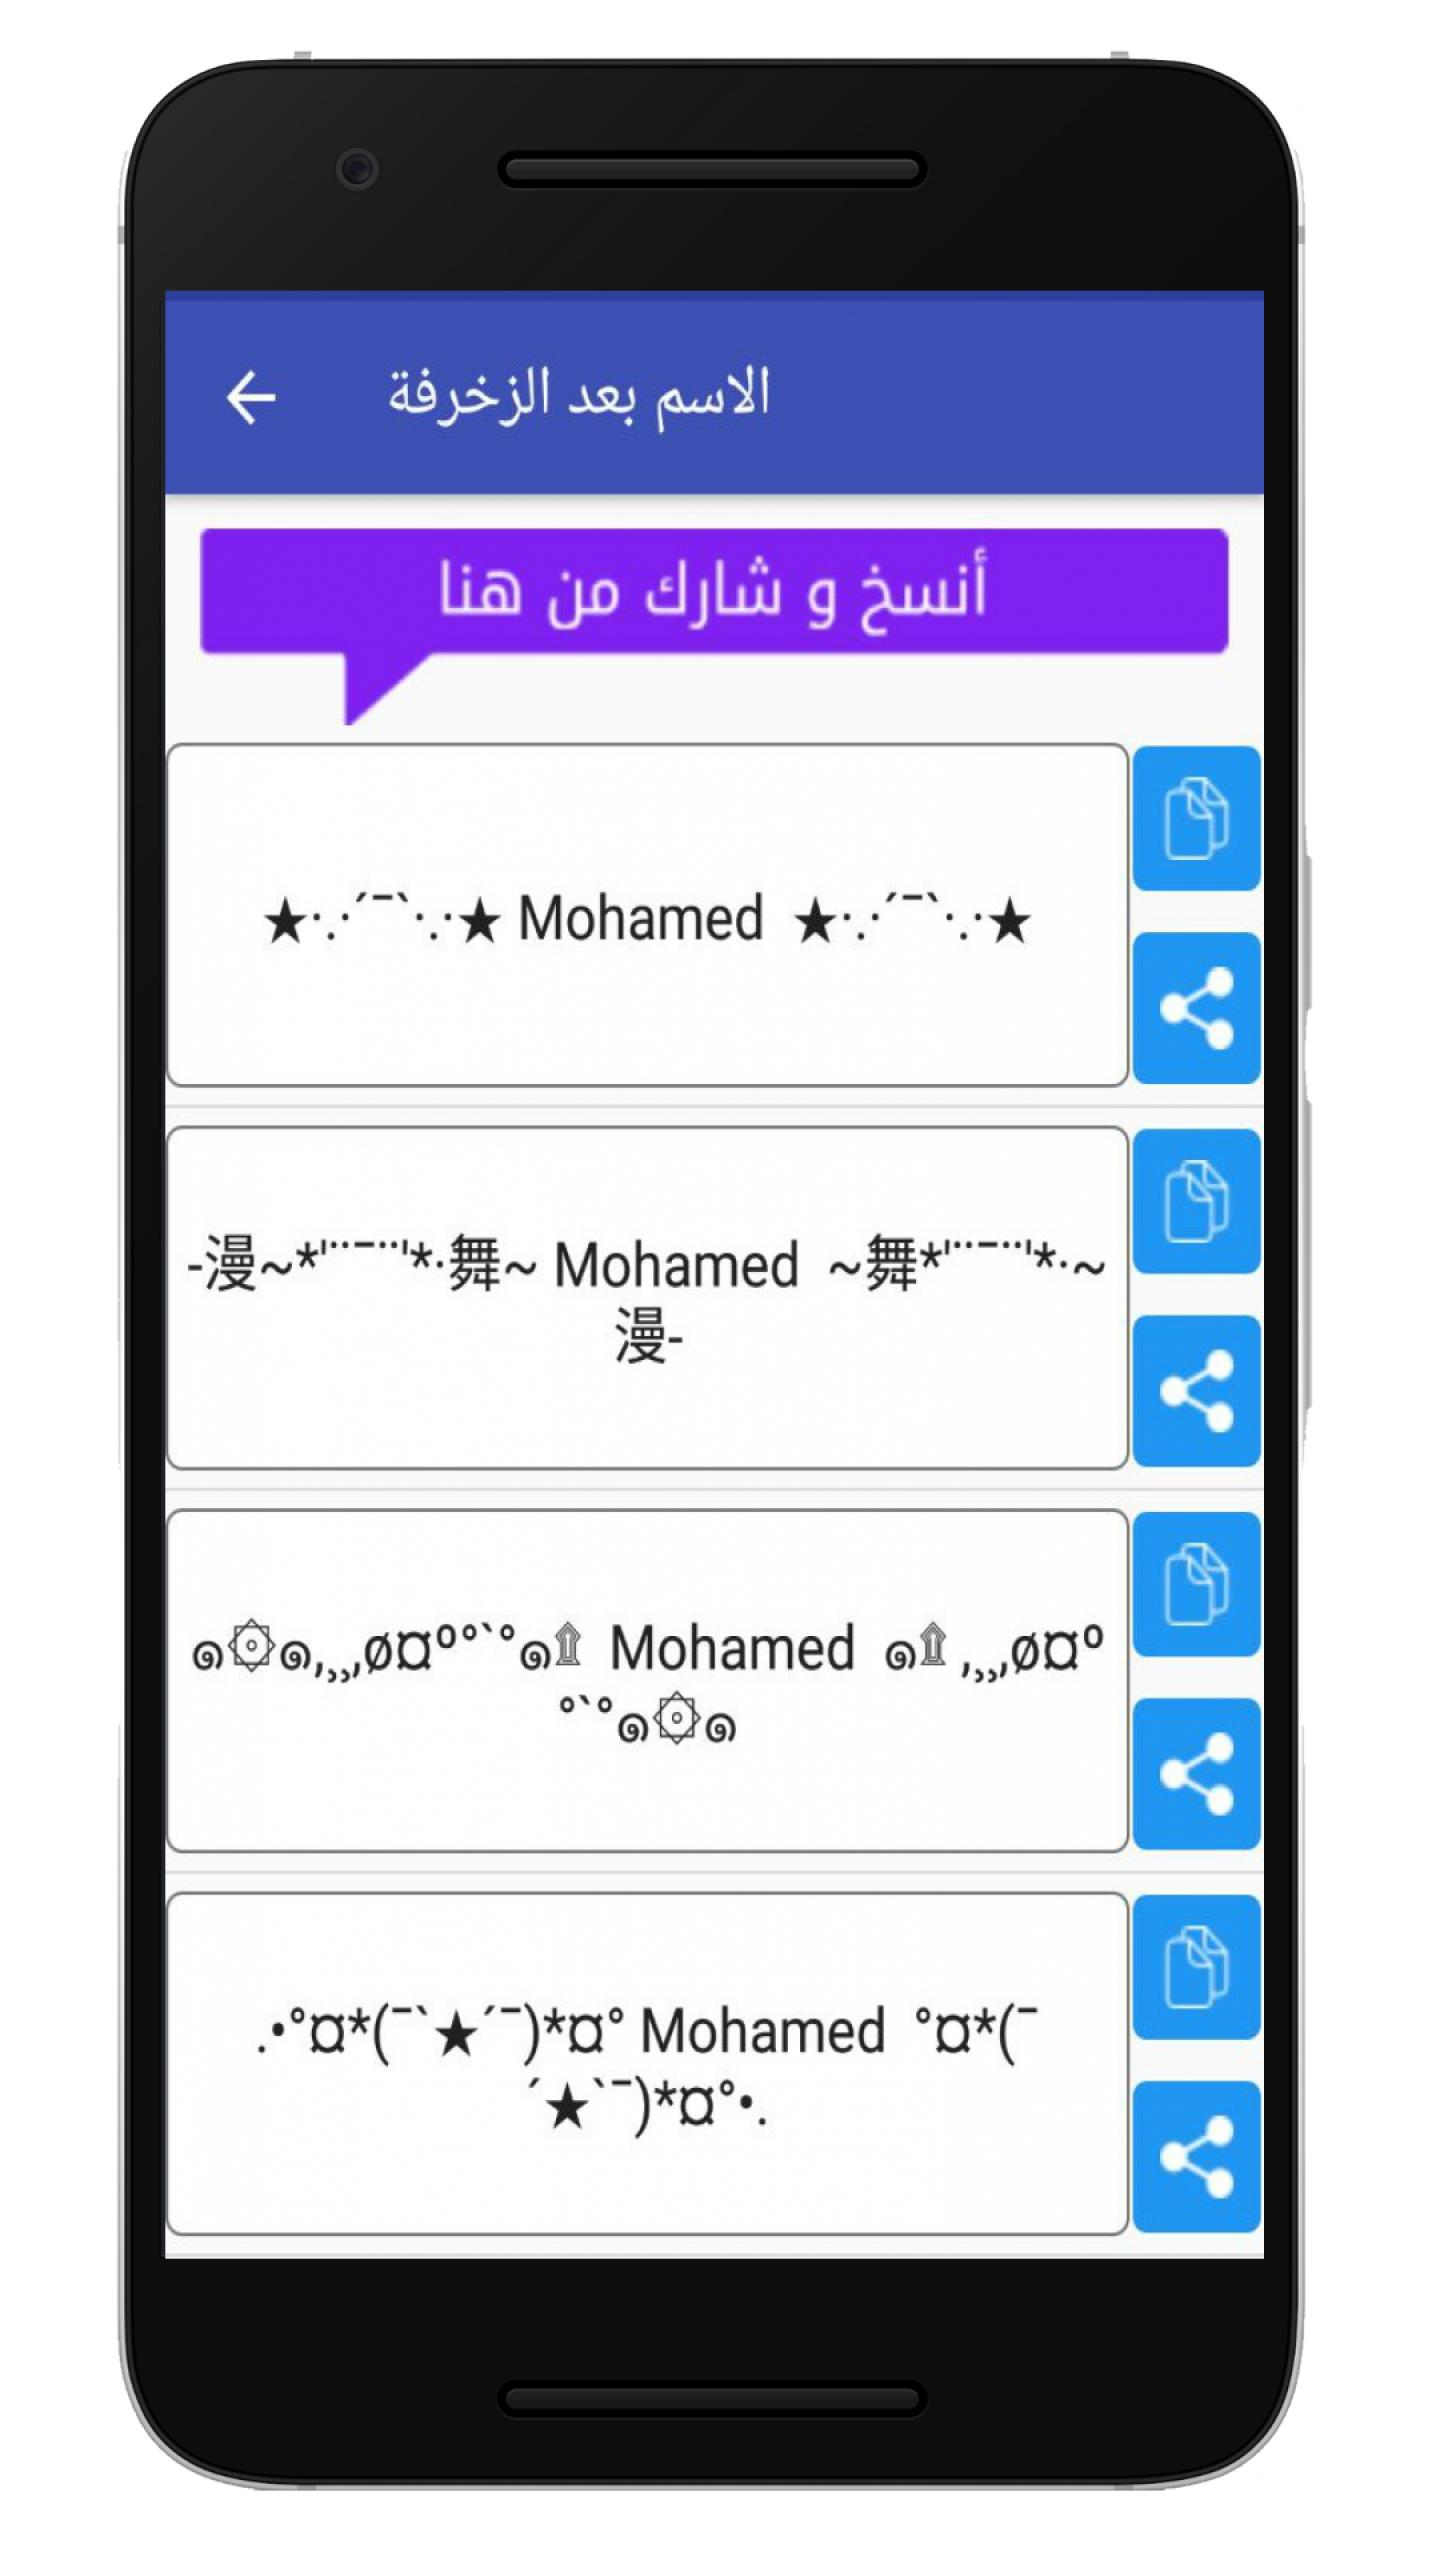 زخرف اسمك كما تشاء For Android Apk Download